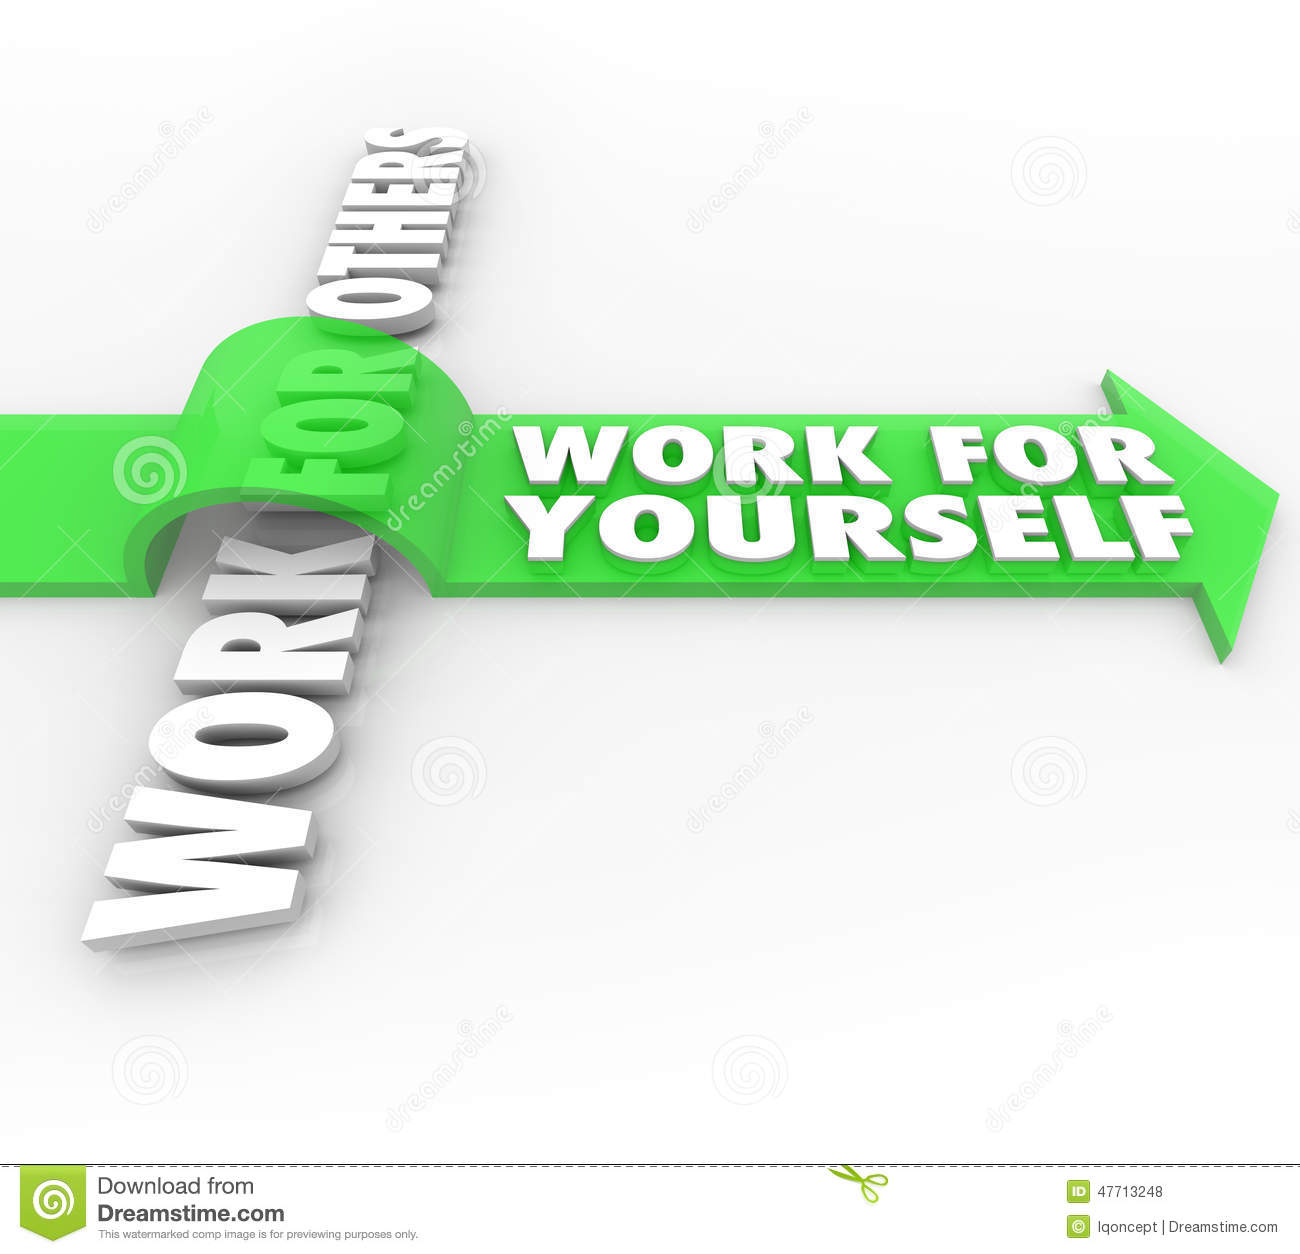 Work For Yourself Vs Others Self Employment Launch Own ...